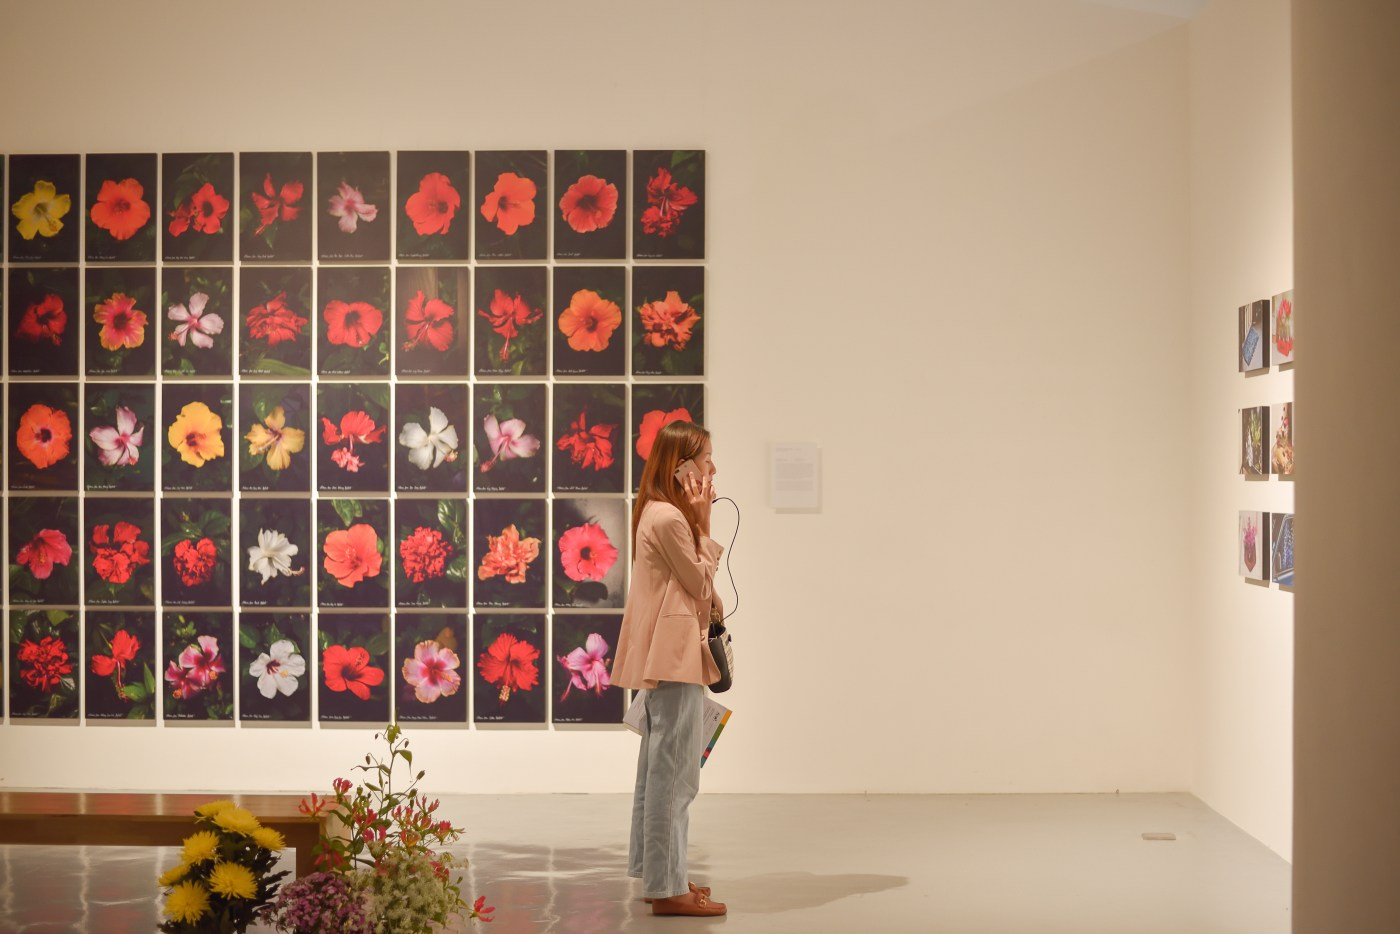 All images are courtesy of Bangkok Art and Culture Centre and Sunpride Foundation.